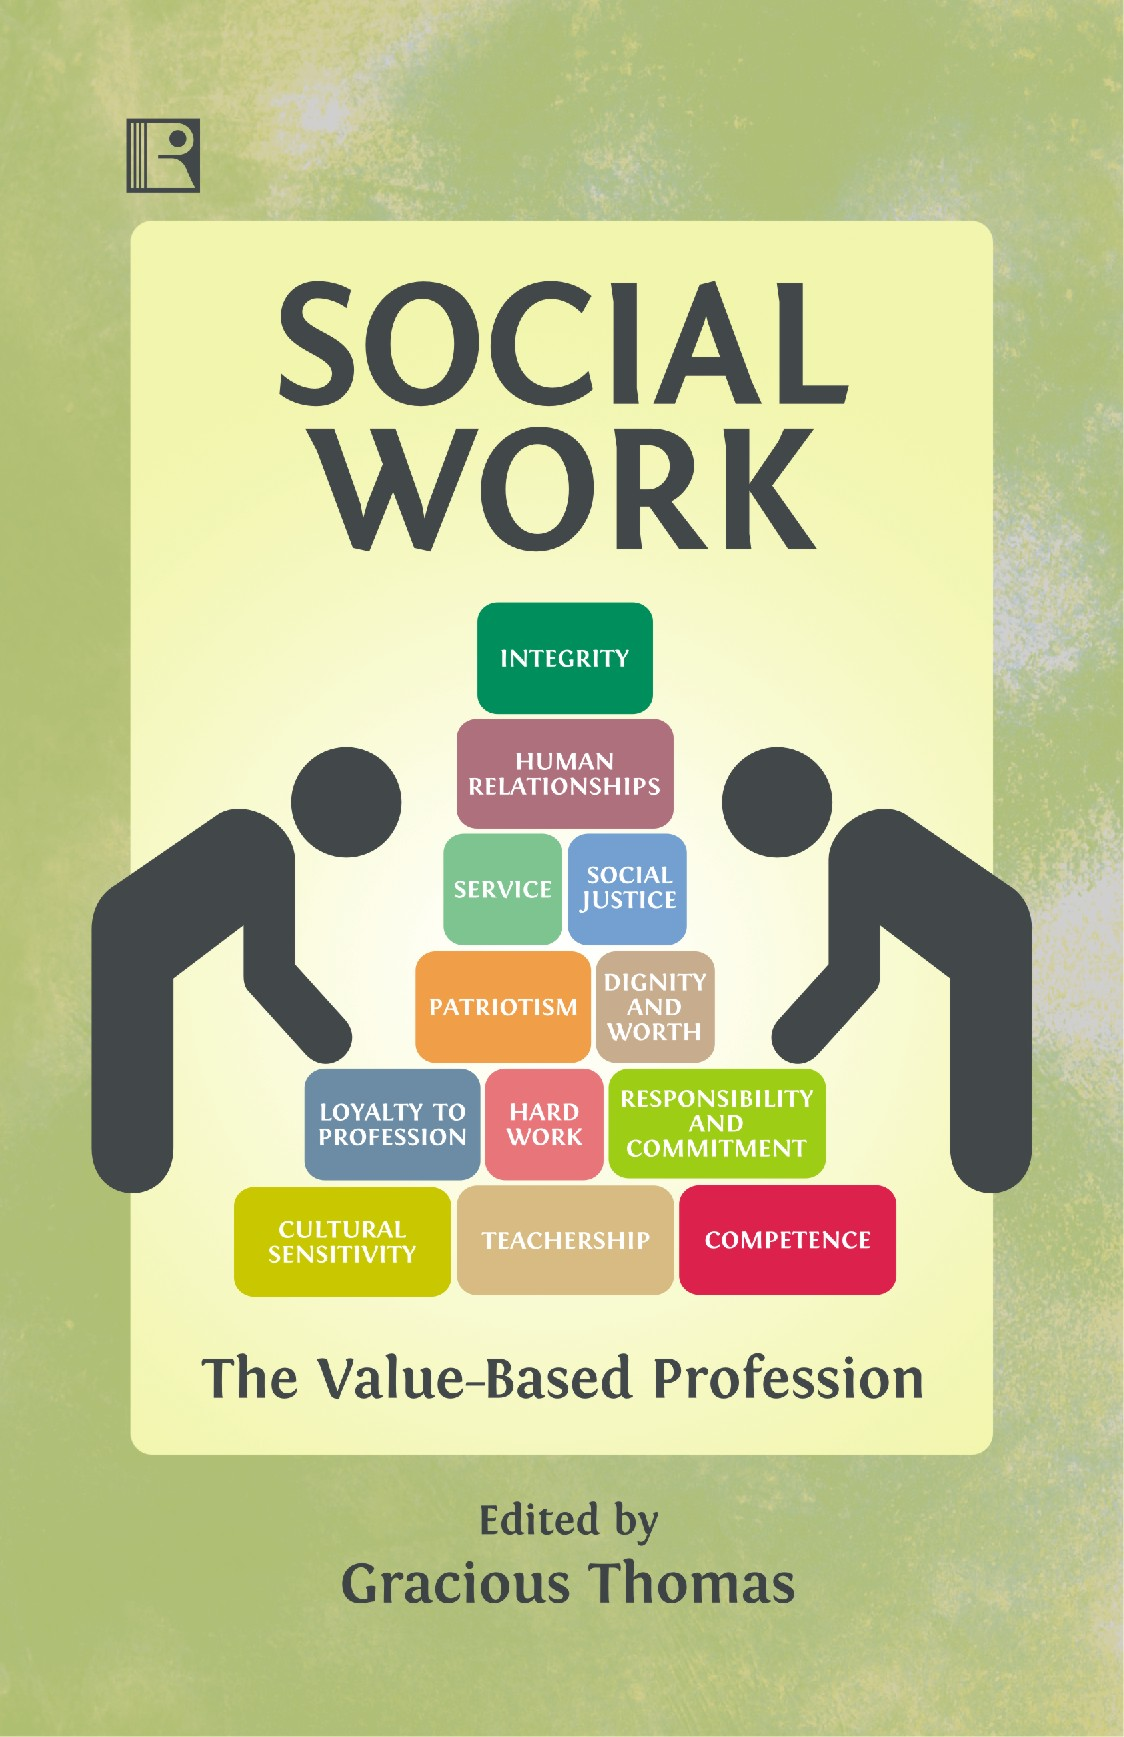 SOCIAL WORK The ValueBased Profession - Indian Books and Periodicals